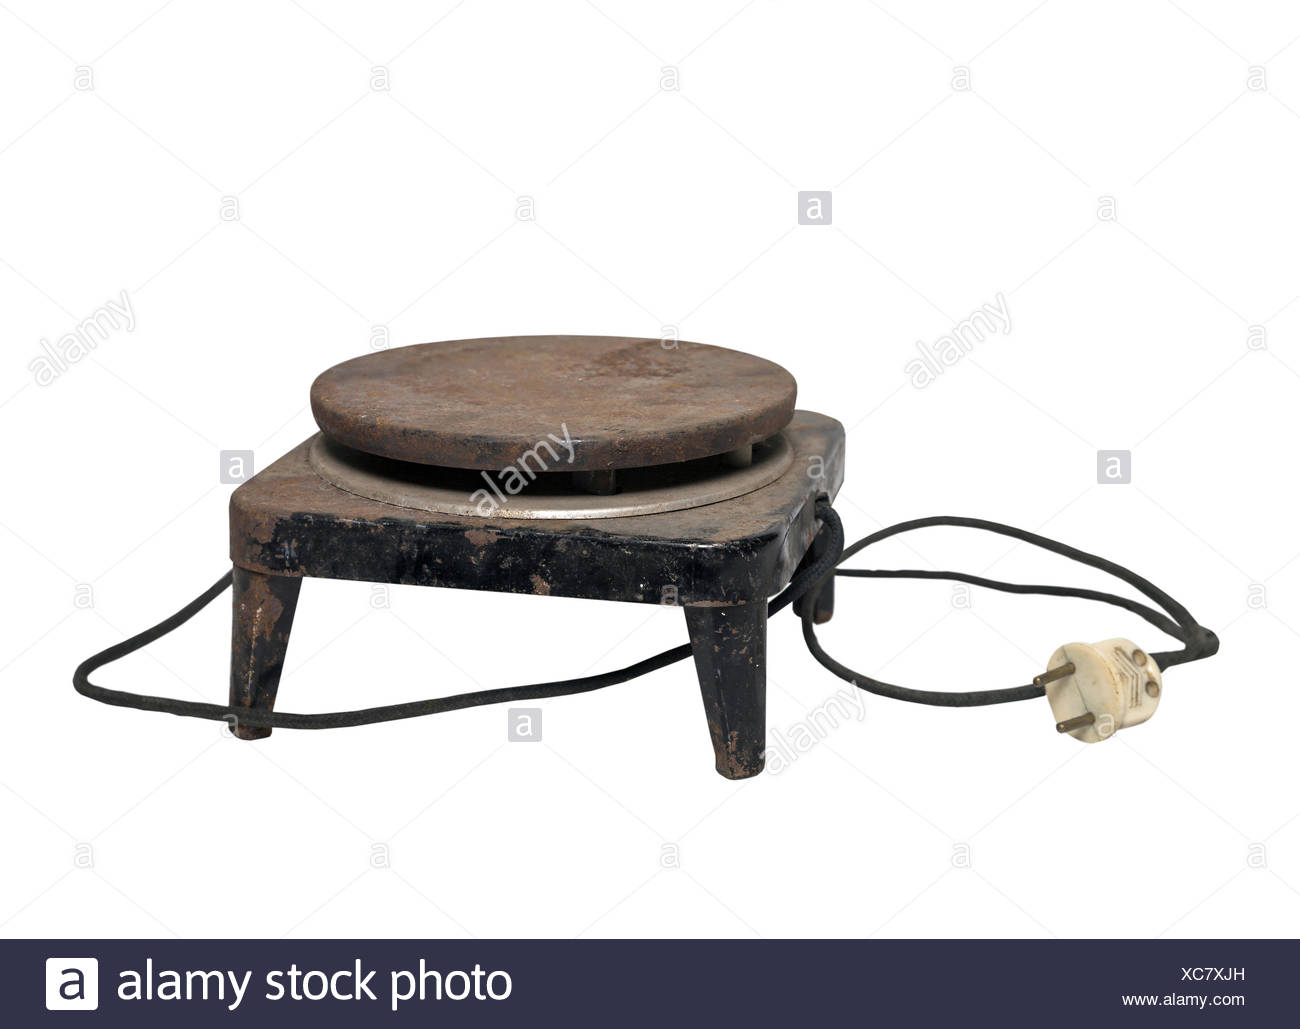 old electric stove - Stock Image